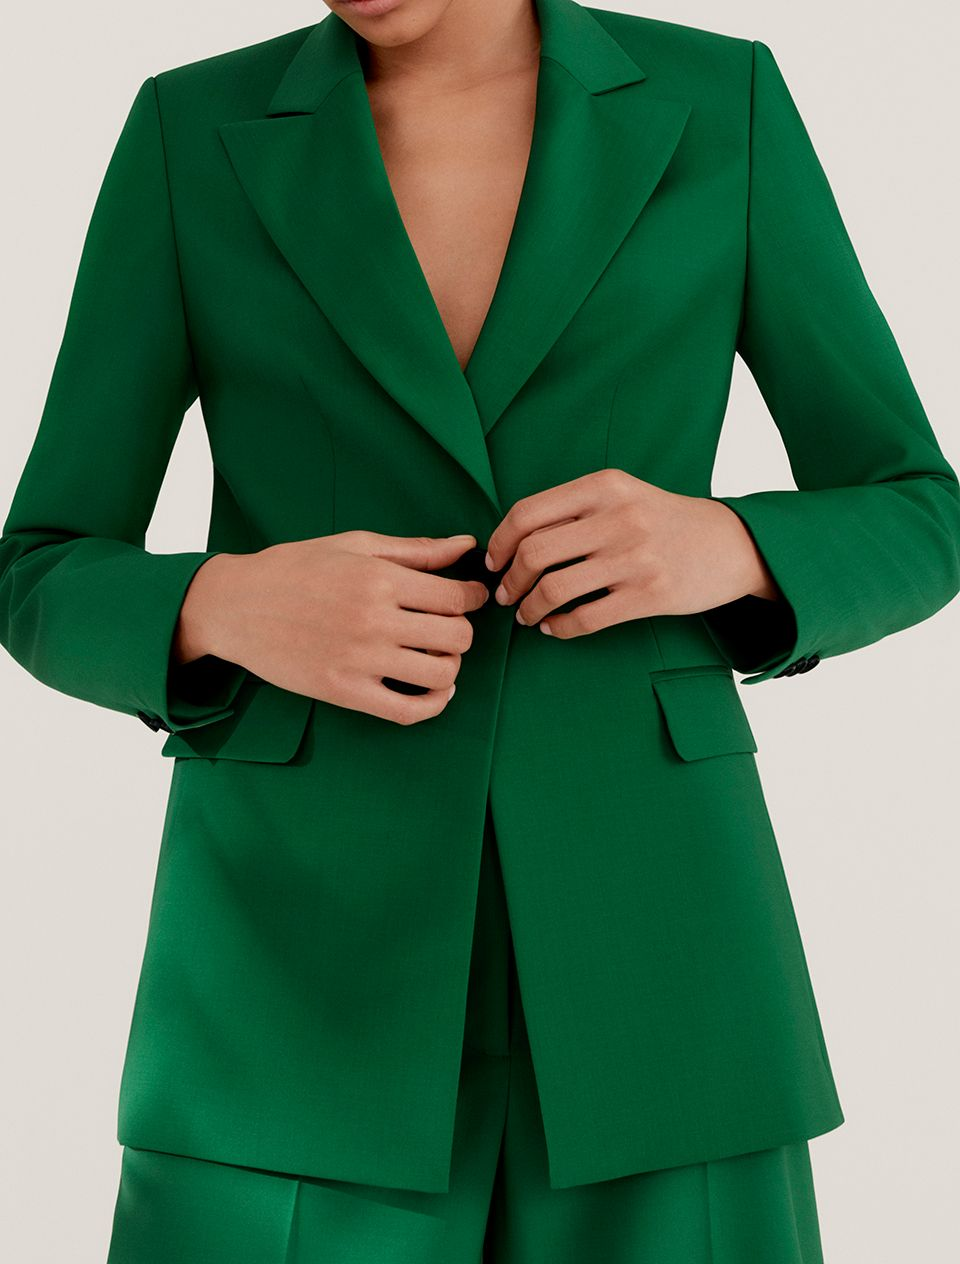 Woman in a green suit